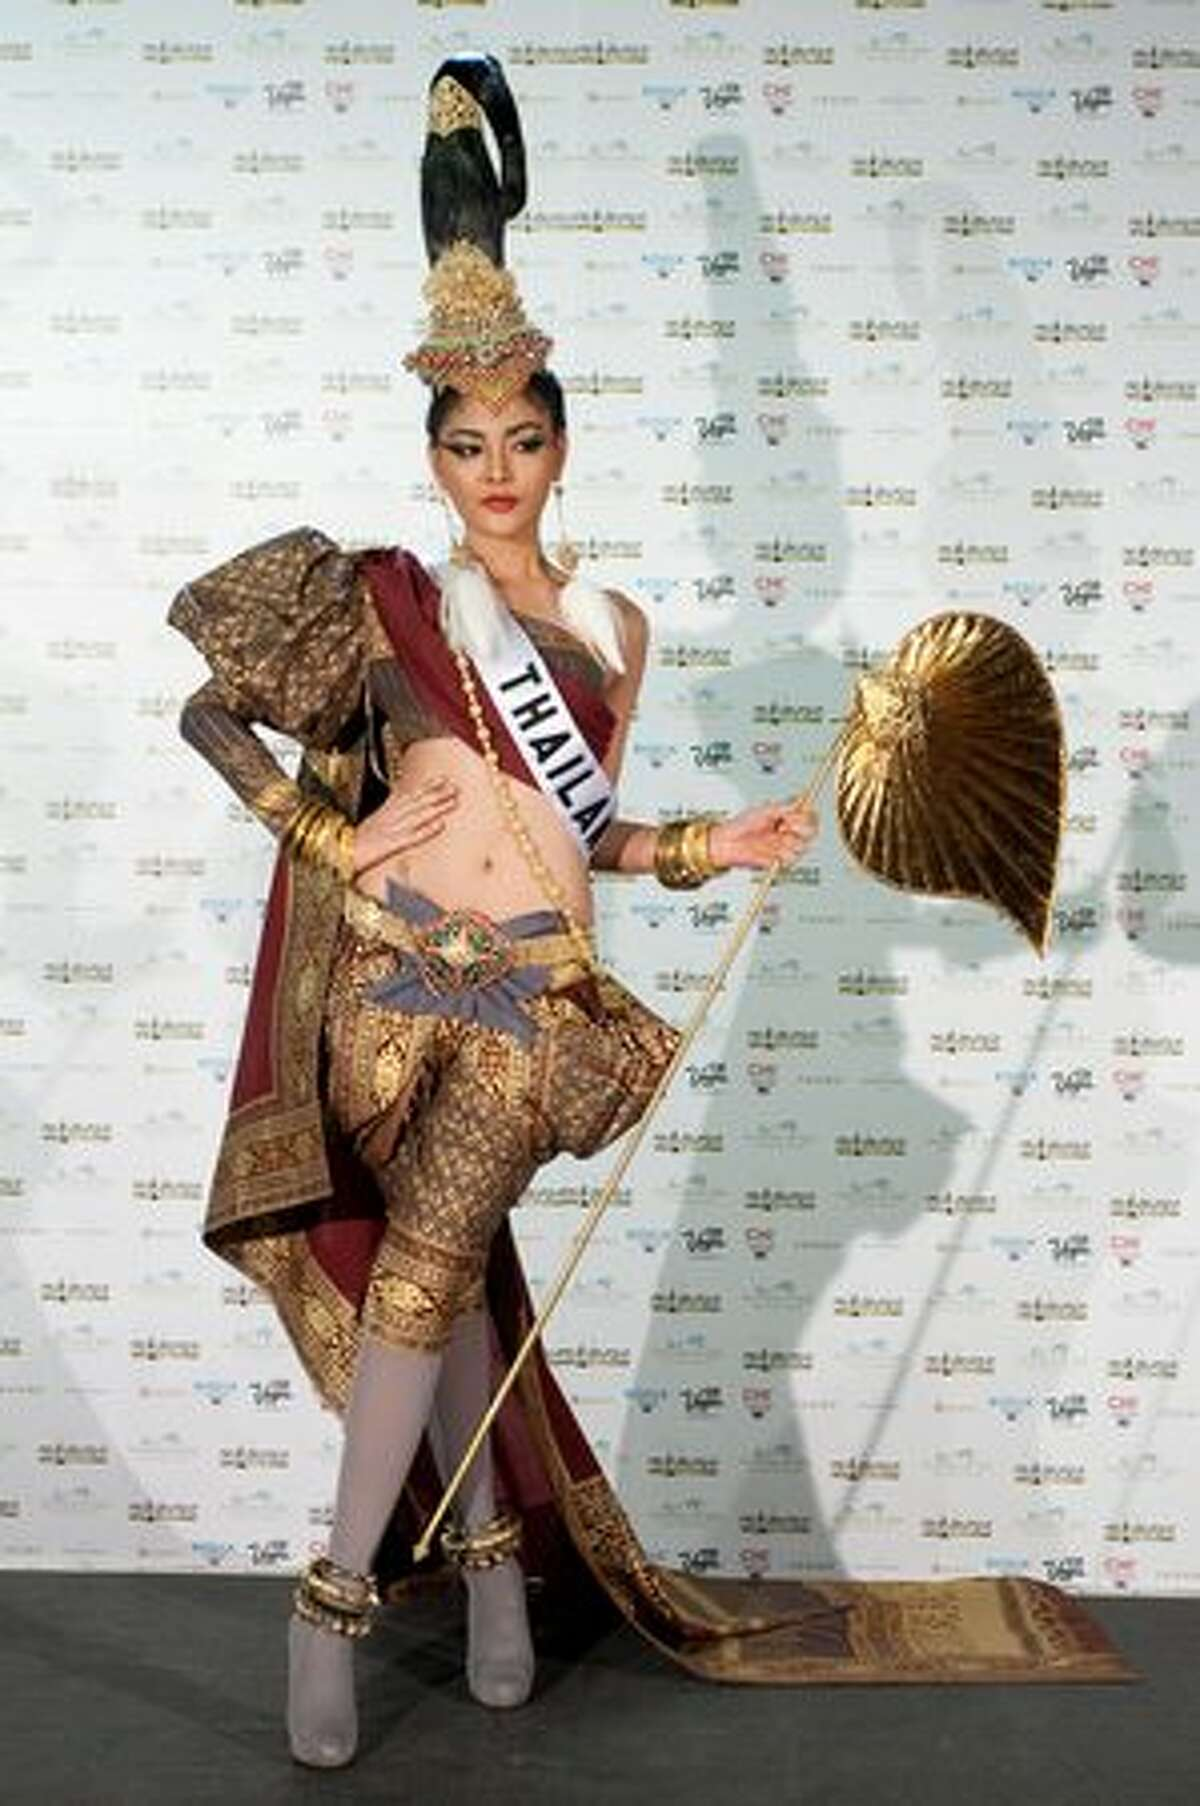 Fonthip Watcharatrakul, Miss Thailand 2010, also won for best national costume, seen here.